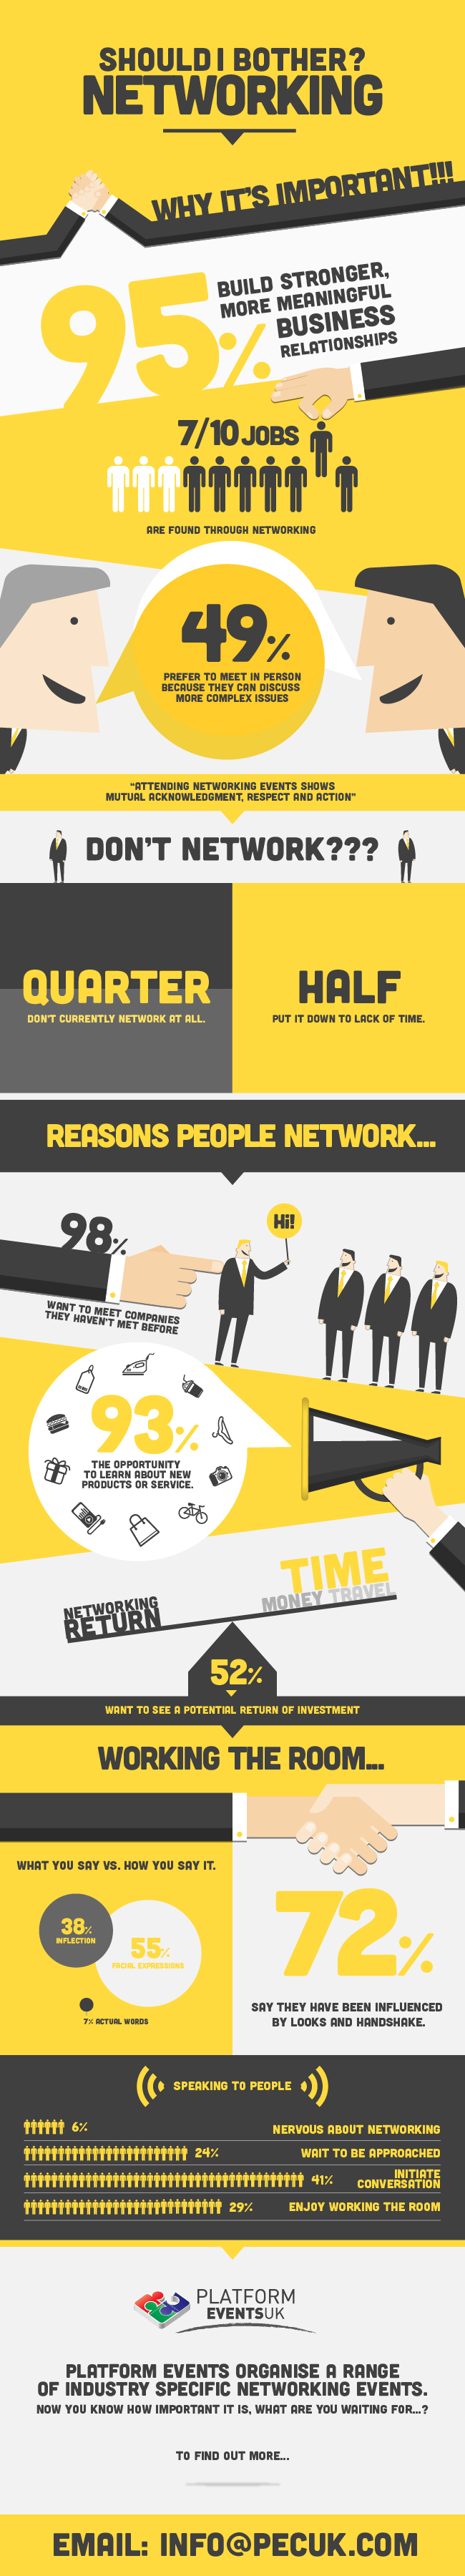 Networking-Infographic-01